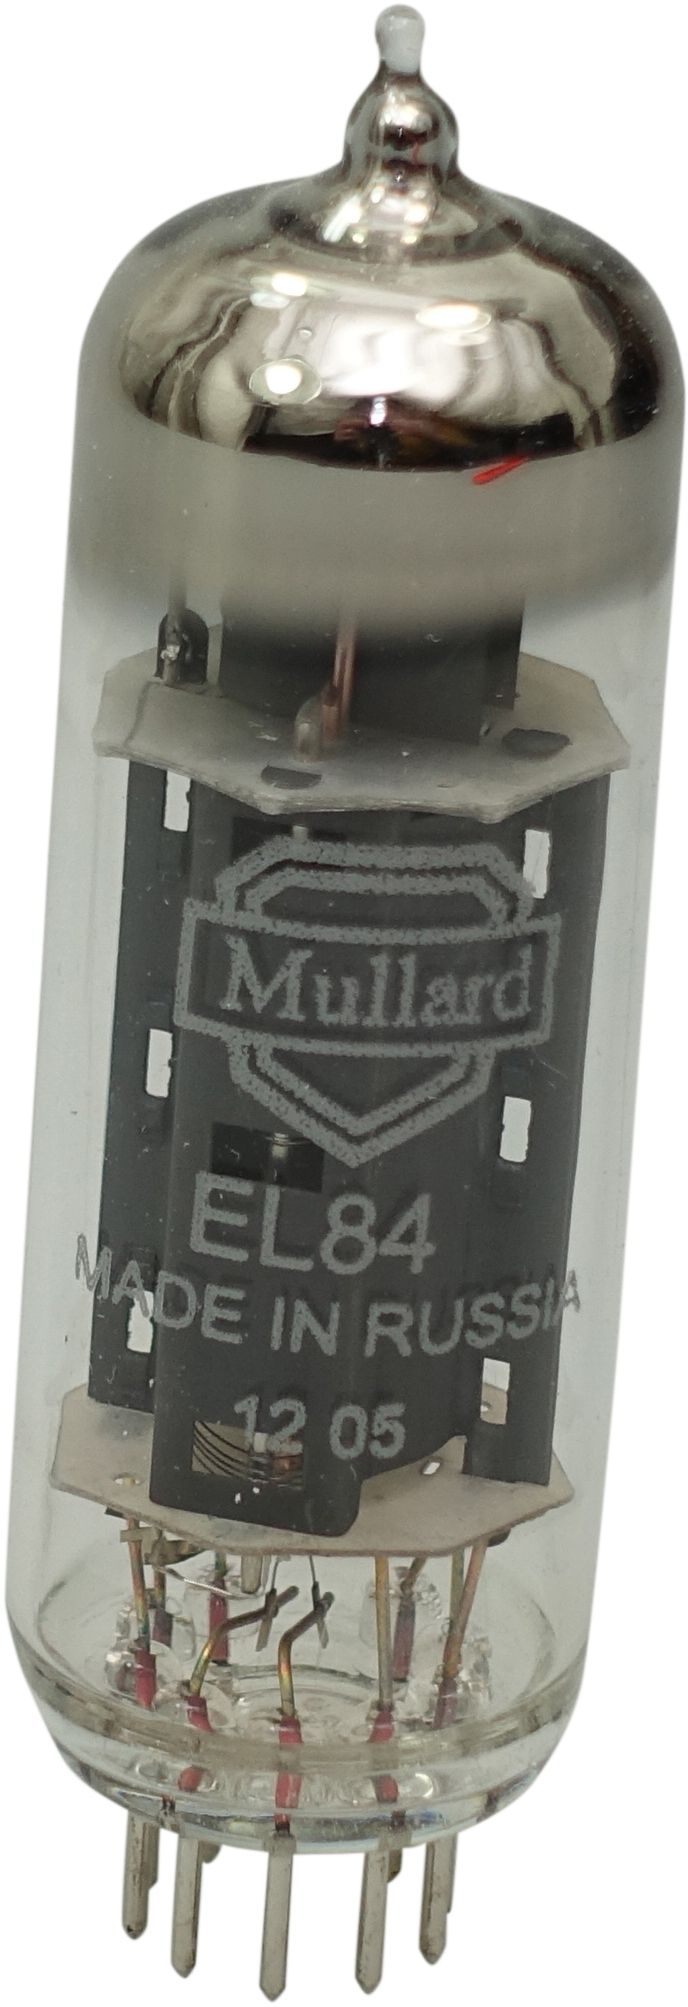 EL84 Mullard Platinum Matched